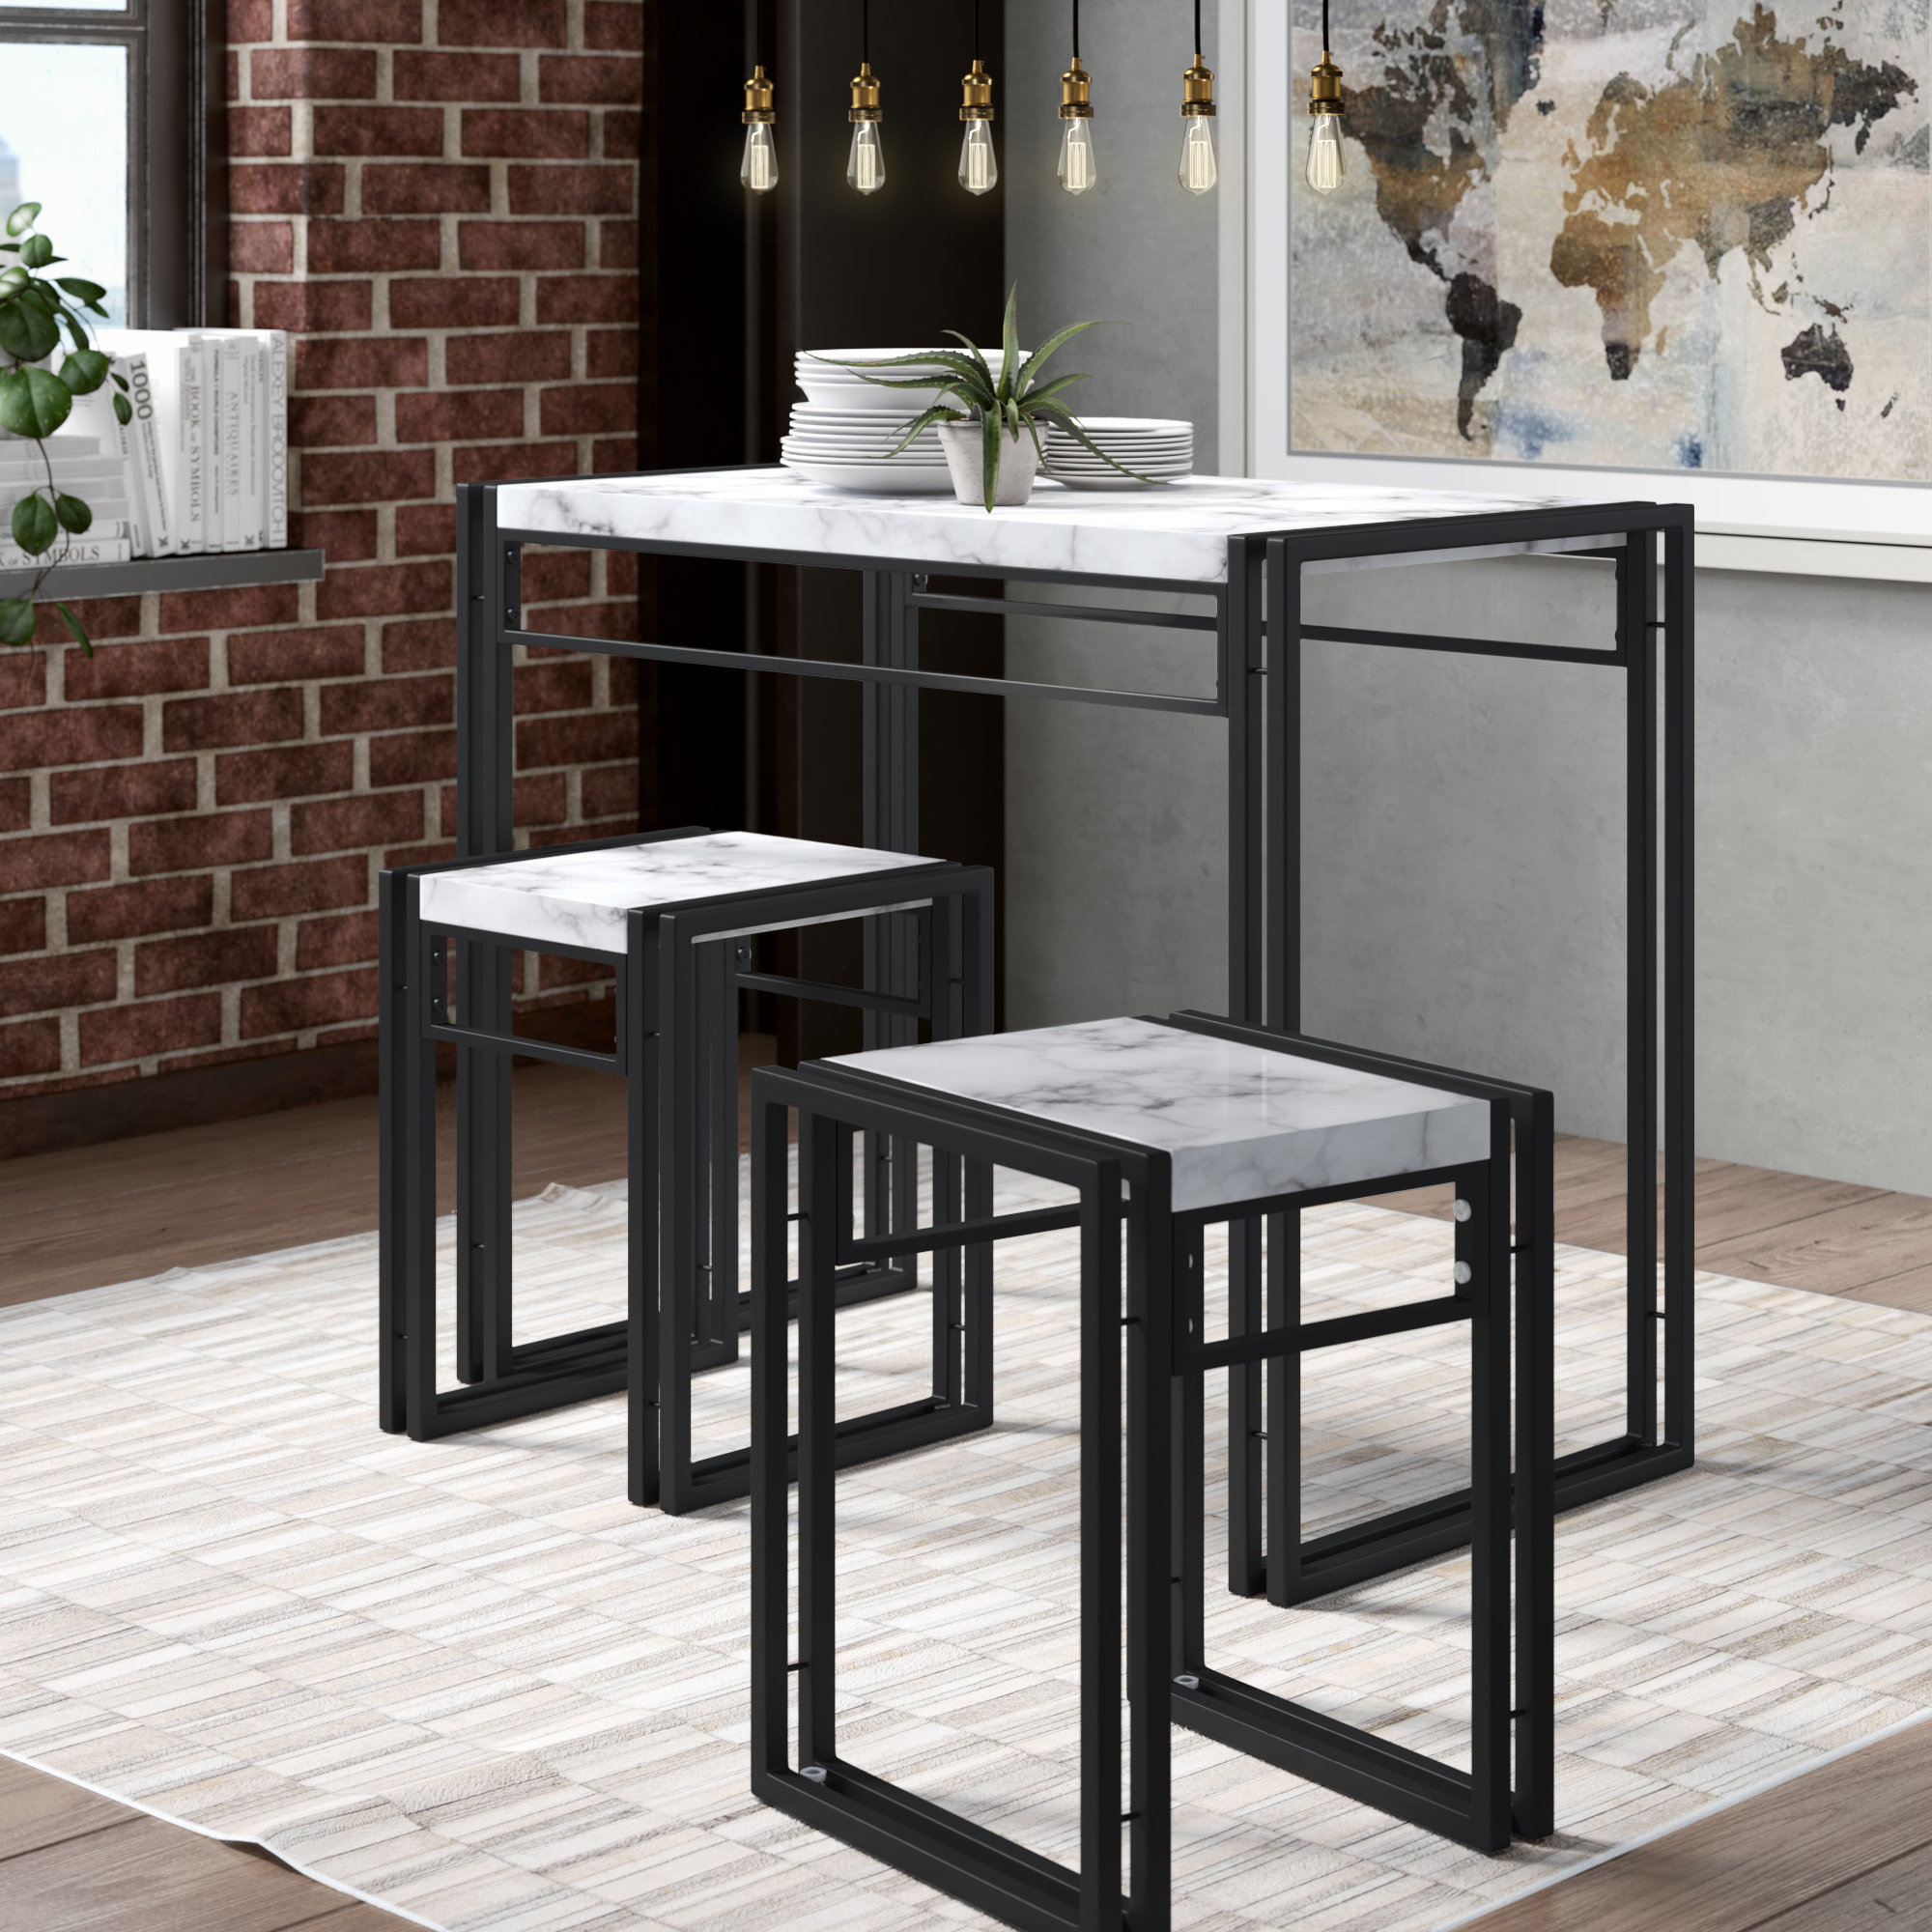 Wayfair Pertaining To Lillard 3 Piece Breakfast Nook Dining Sets (View 9 of 20)